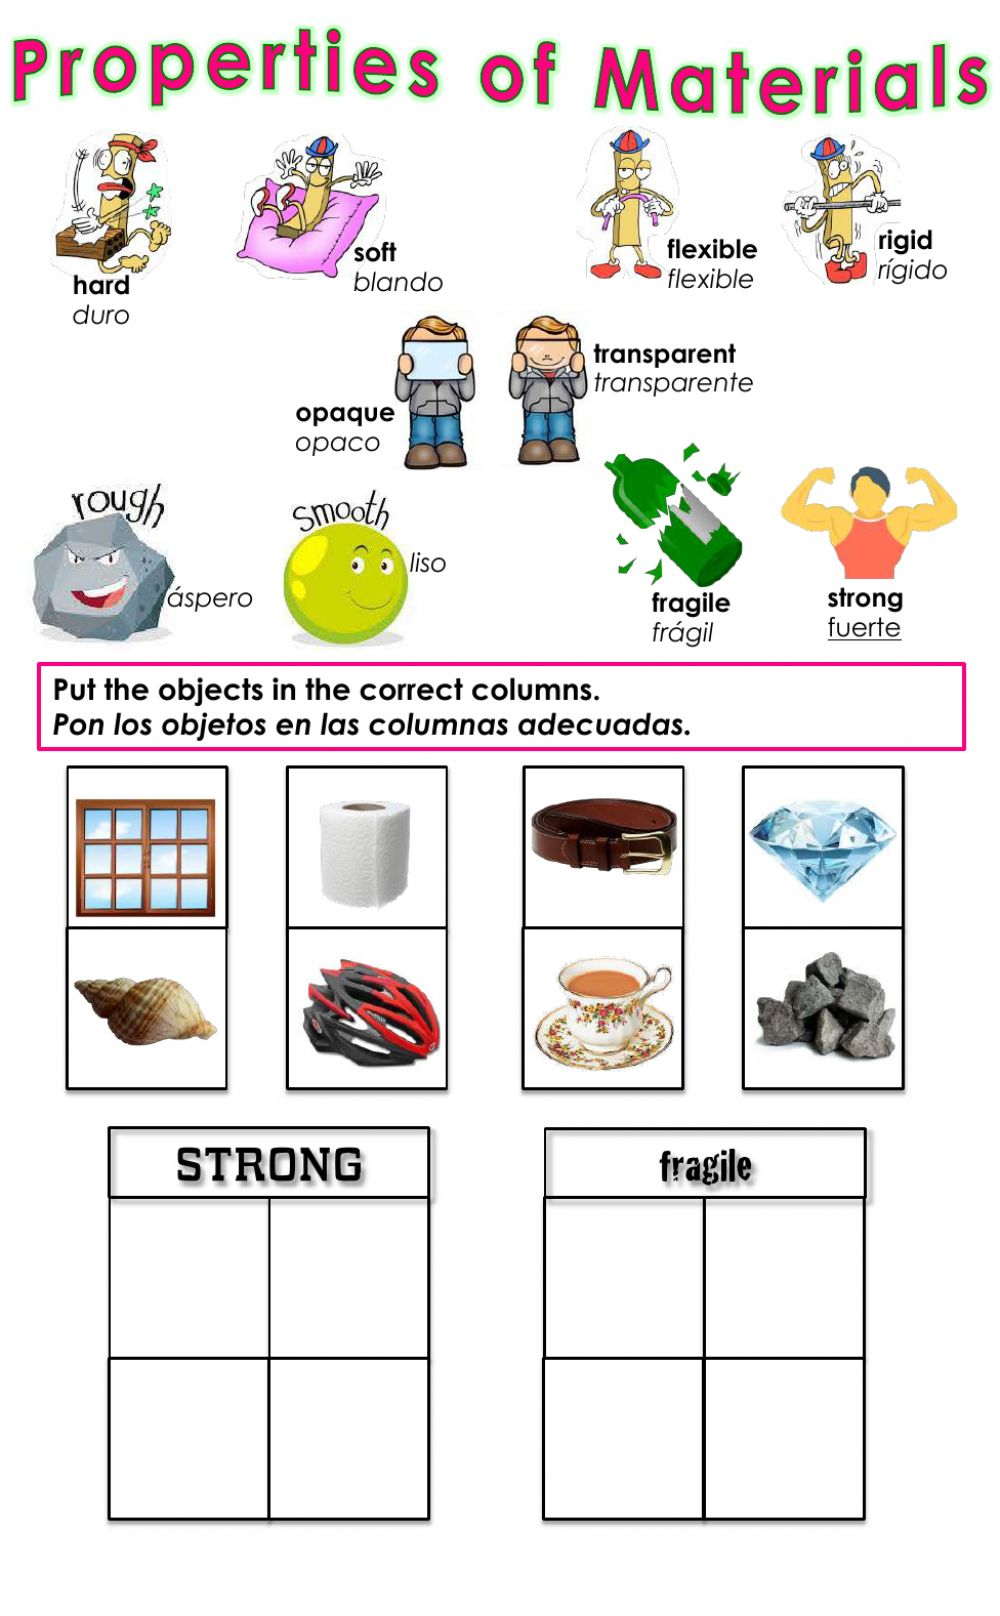 medium resolution of Properties of Materials - Strong or Fragile? worksheet